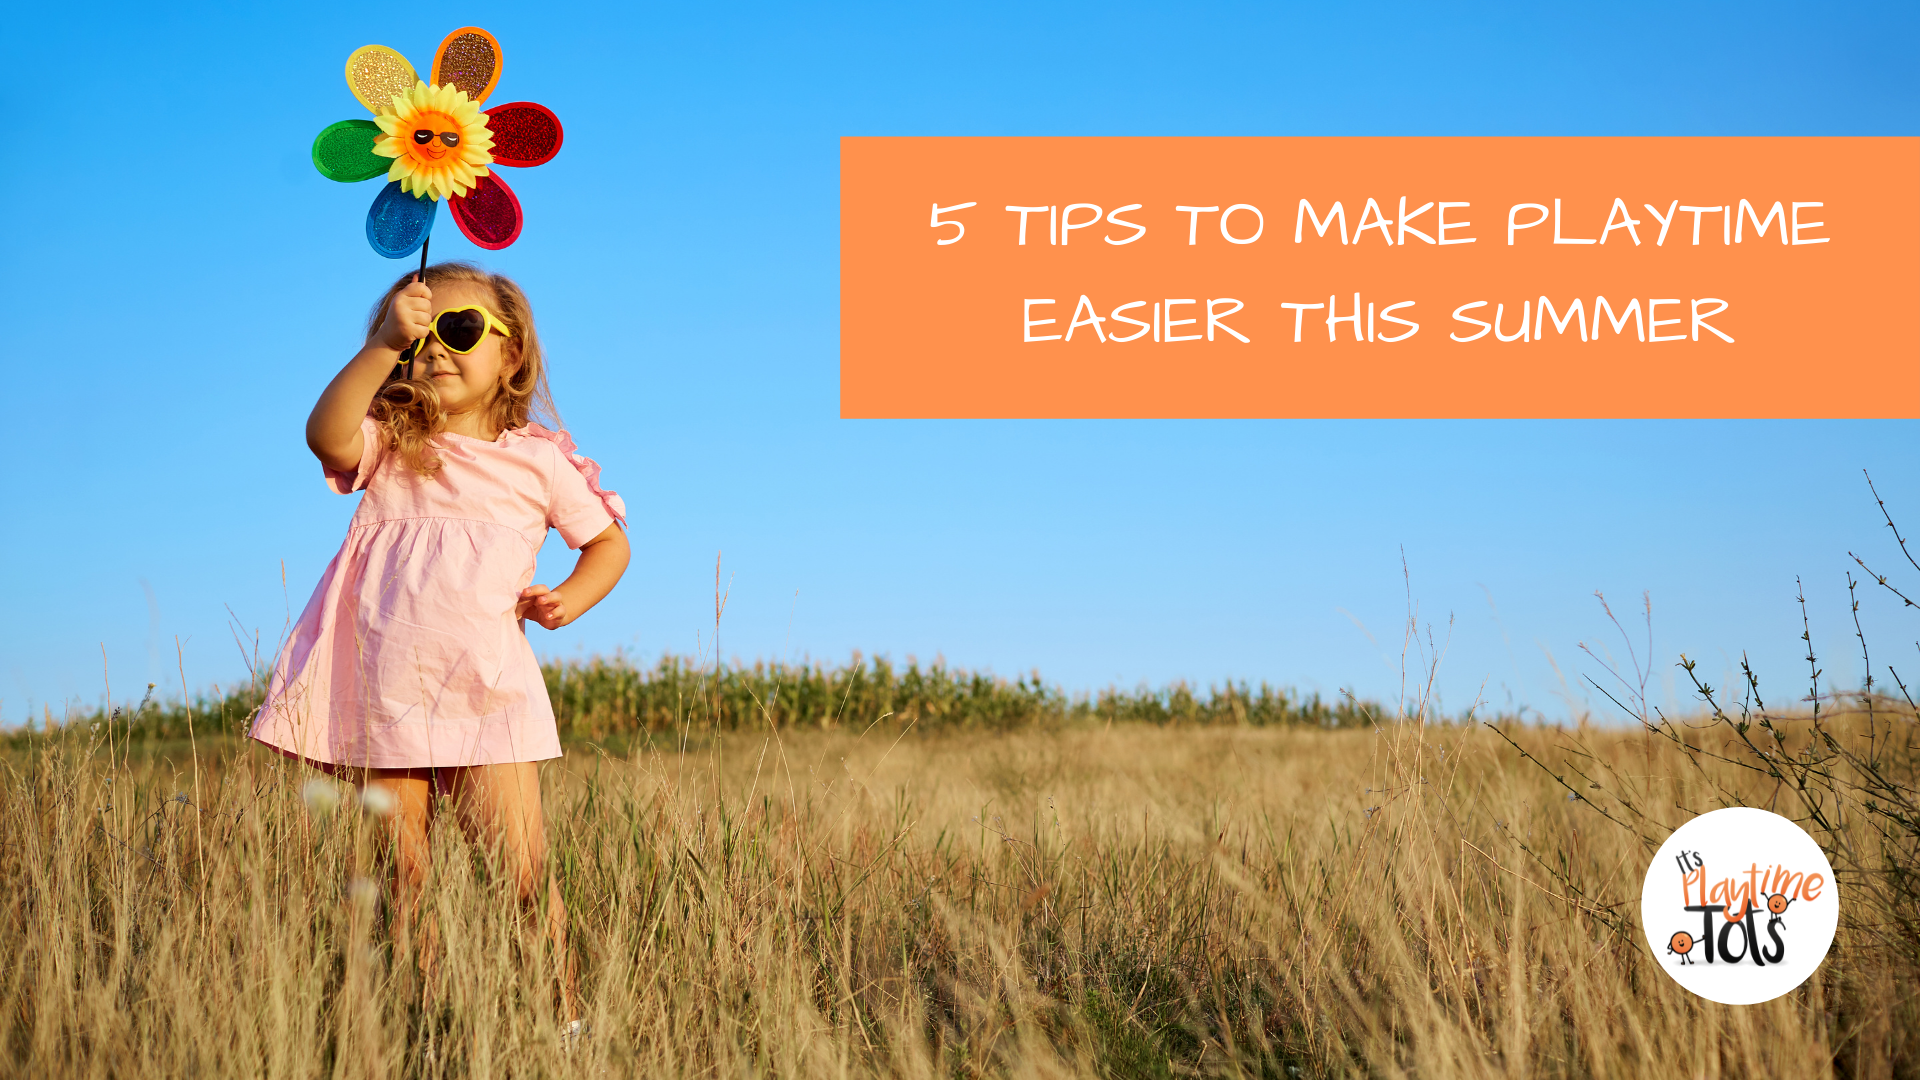 5 Tips To Make Playtime Easier This Summer